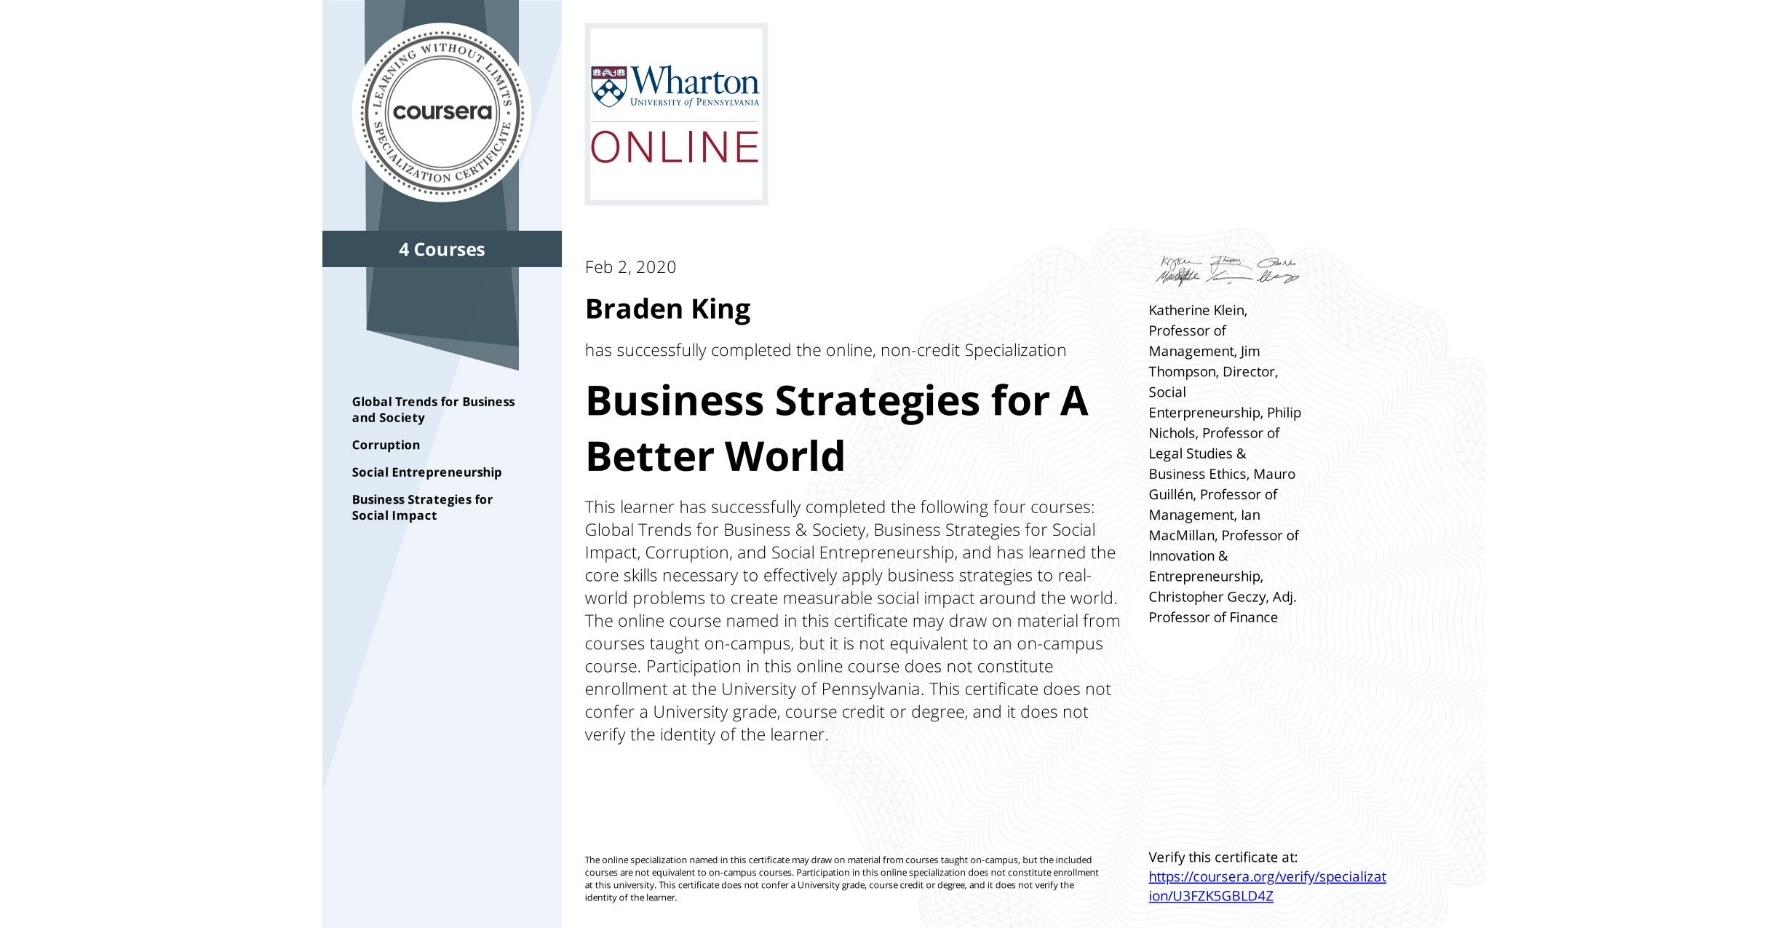 View certificate for Braden King, Business Strategies for A Better World, offered through Coursera. This learner has successfully completed the following four courses: Global Trends for Business & Society, Business Strategies for Social Impact, Corruption, and Social Entrepreneurship, and has learned the core skills necessary to effectively apply business strategies to real-world problems to create measurable social impact around the world.   The online course named in this certificate may draw on material from courses taught on-campus, but it is not equivalent to an on-campus course. Participation in this online course does not constitute enrollment at the University of Pennsylvania. This certificate does not confer a University grade, course credit or degree, and it does not verify the identity of the learner.